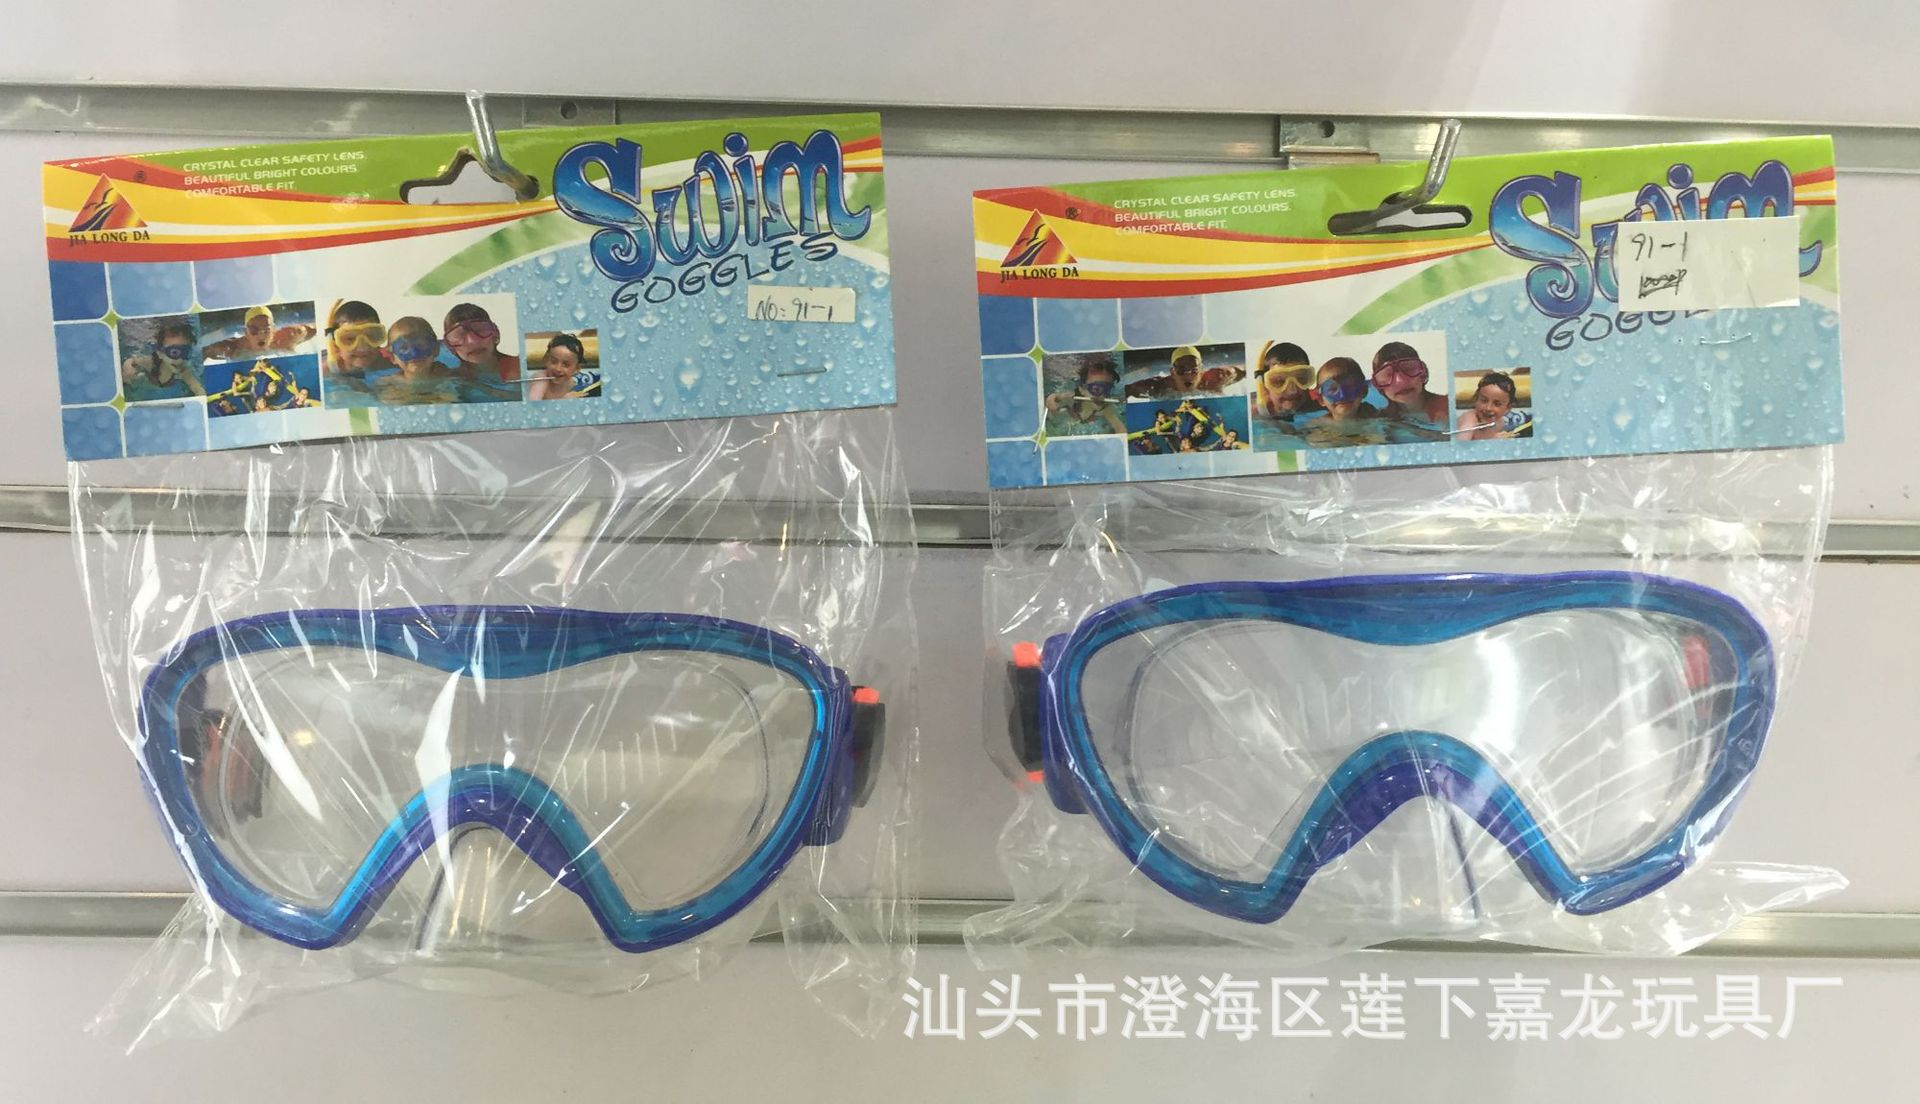 Fine Dragon Swimming Product Export Adult Children Diving Mask Environmentally Friendly PVC Swimming Glasses